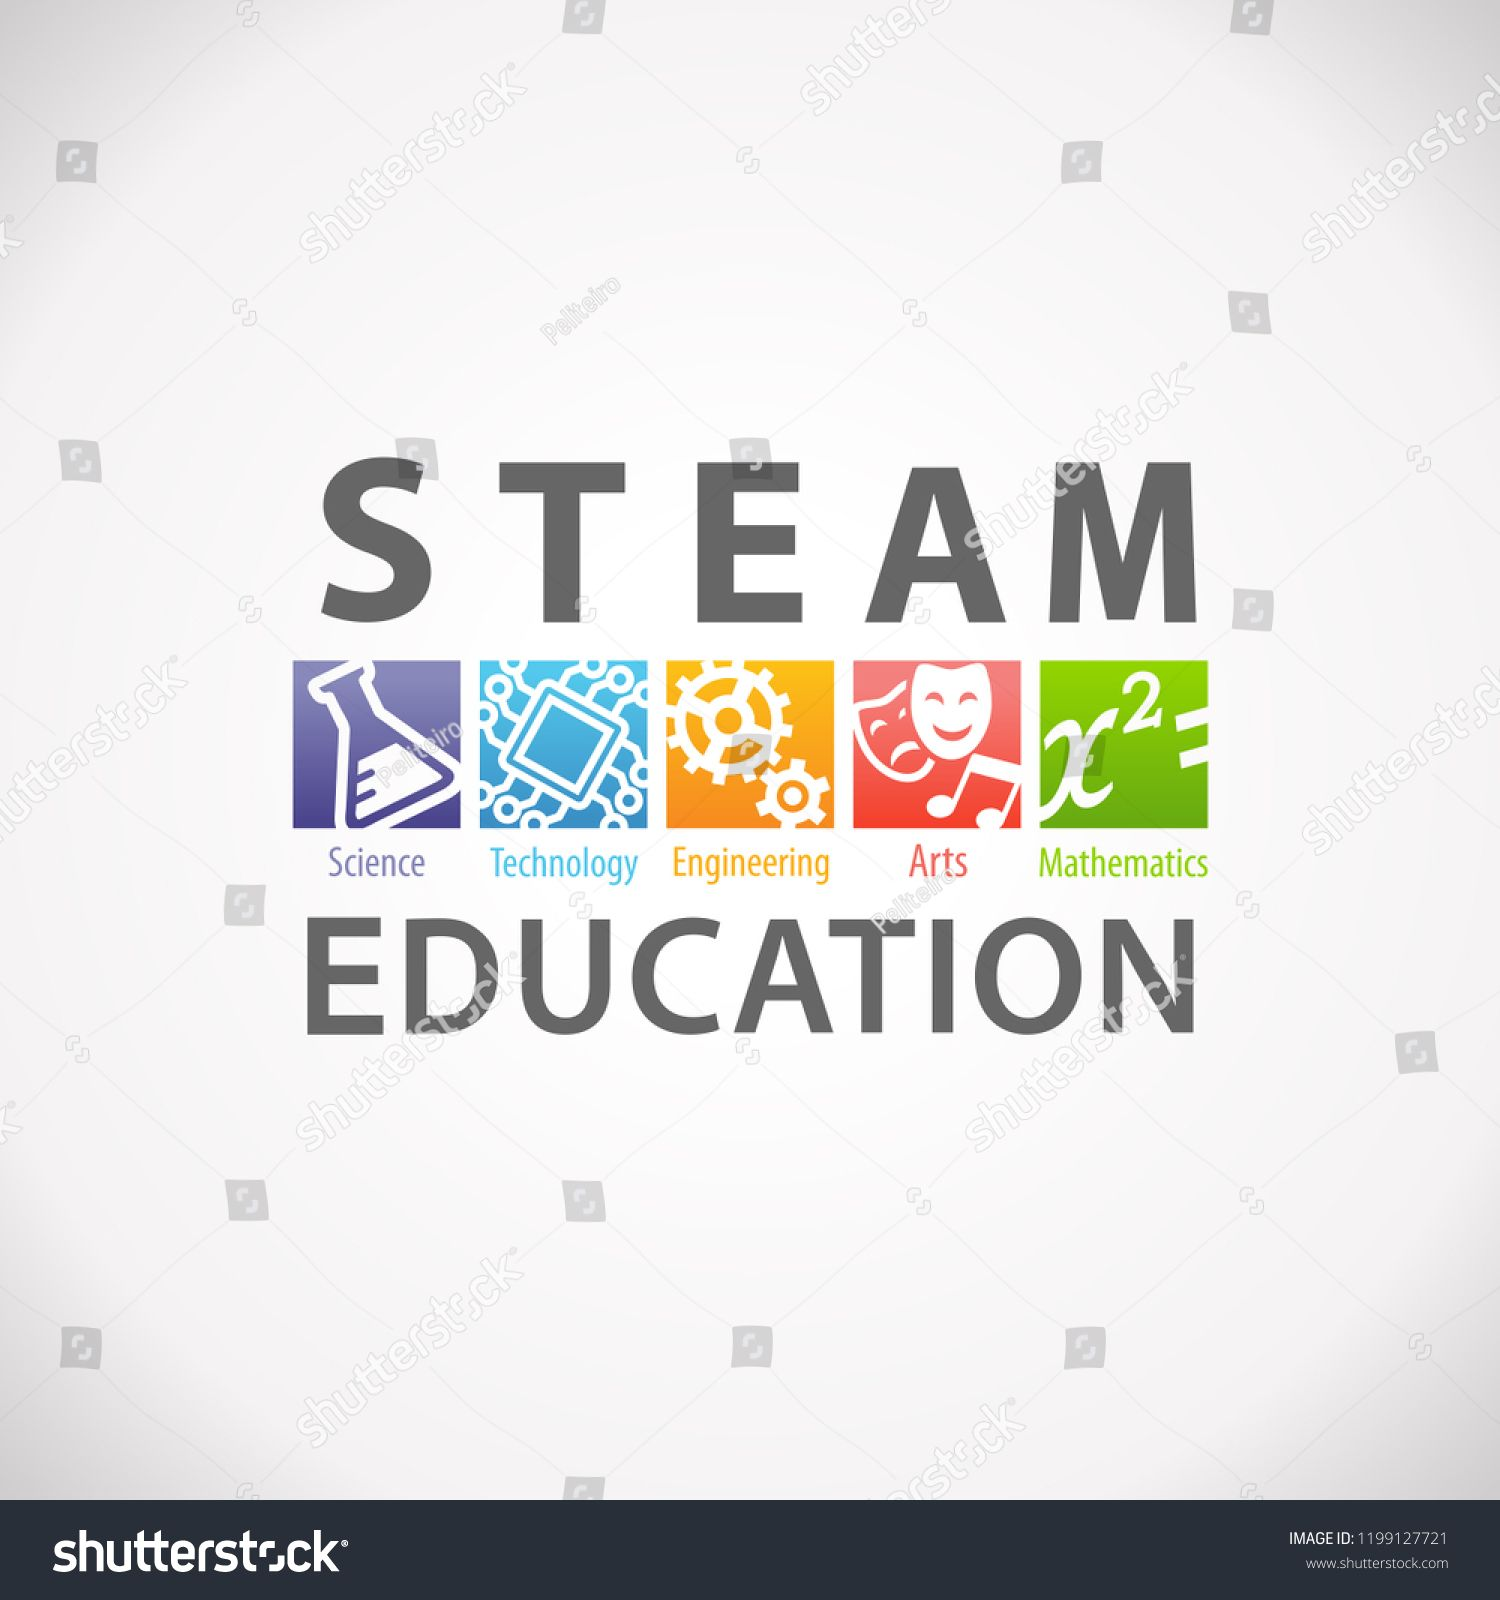 Steam Stem Education Concept Logo Science Technology Engineering Arts Mathematics Ad Sponsored C Stem Education Mathematics Education Mathematics Images